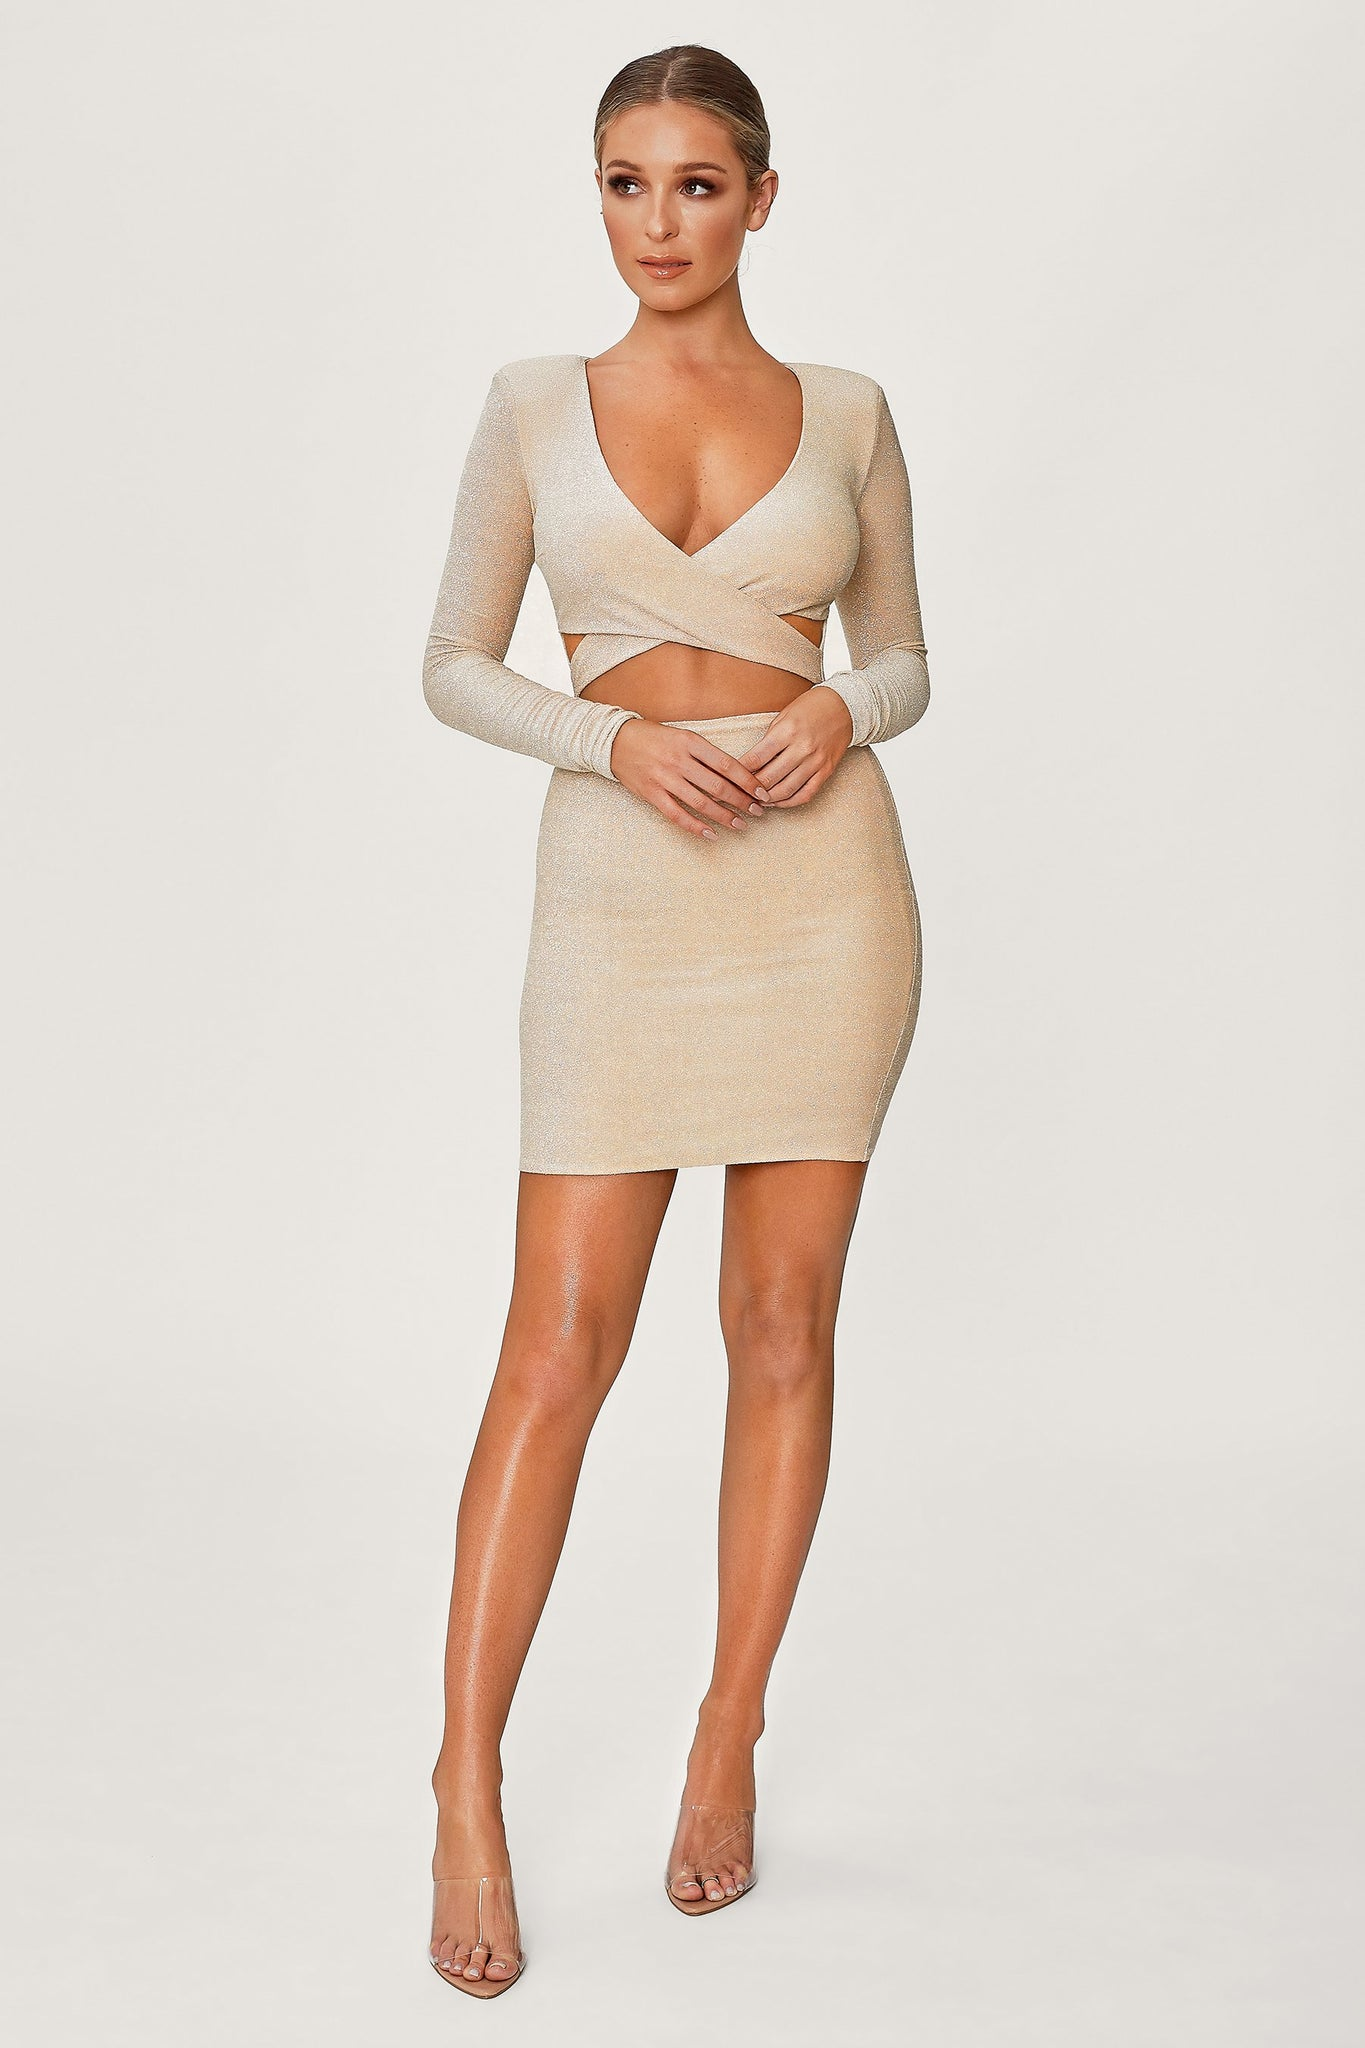 Celeste Shimmer Wrap Mini Dress - Gold - MESHKI